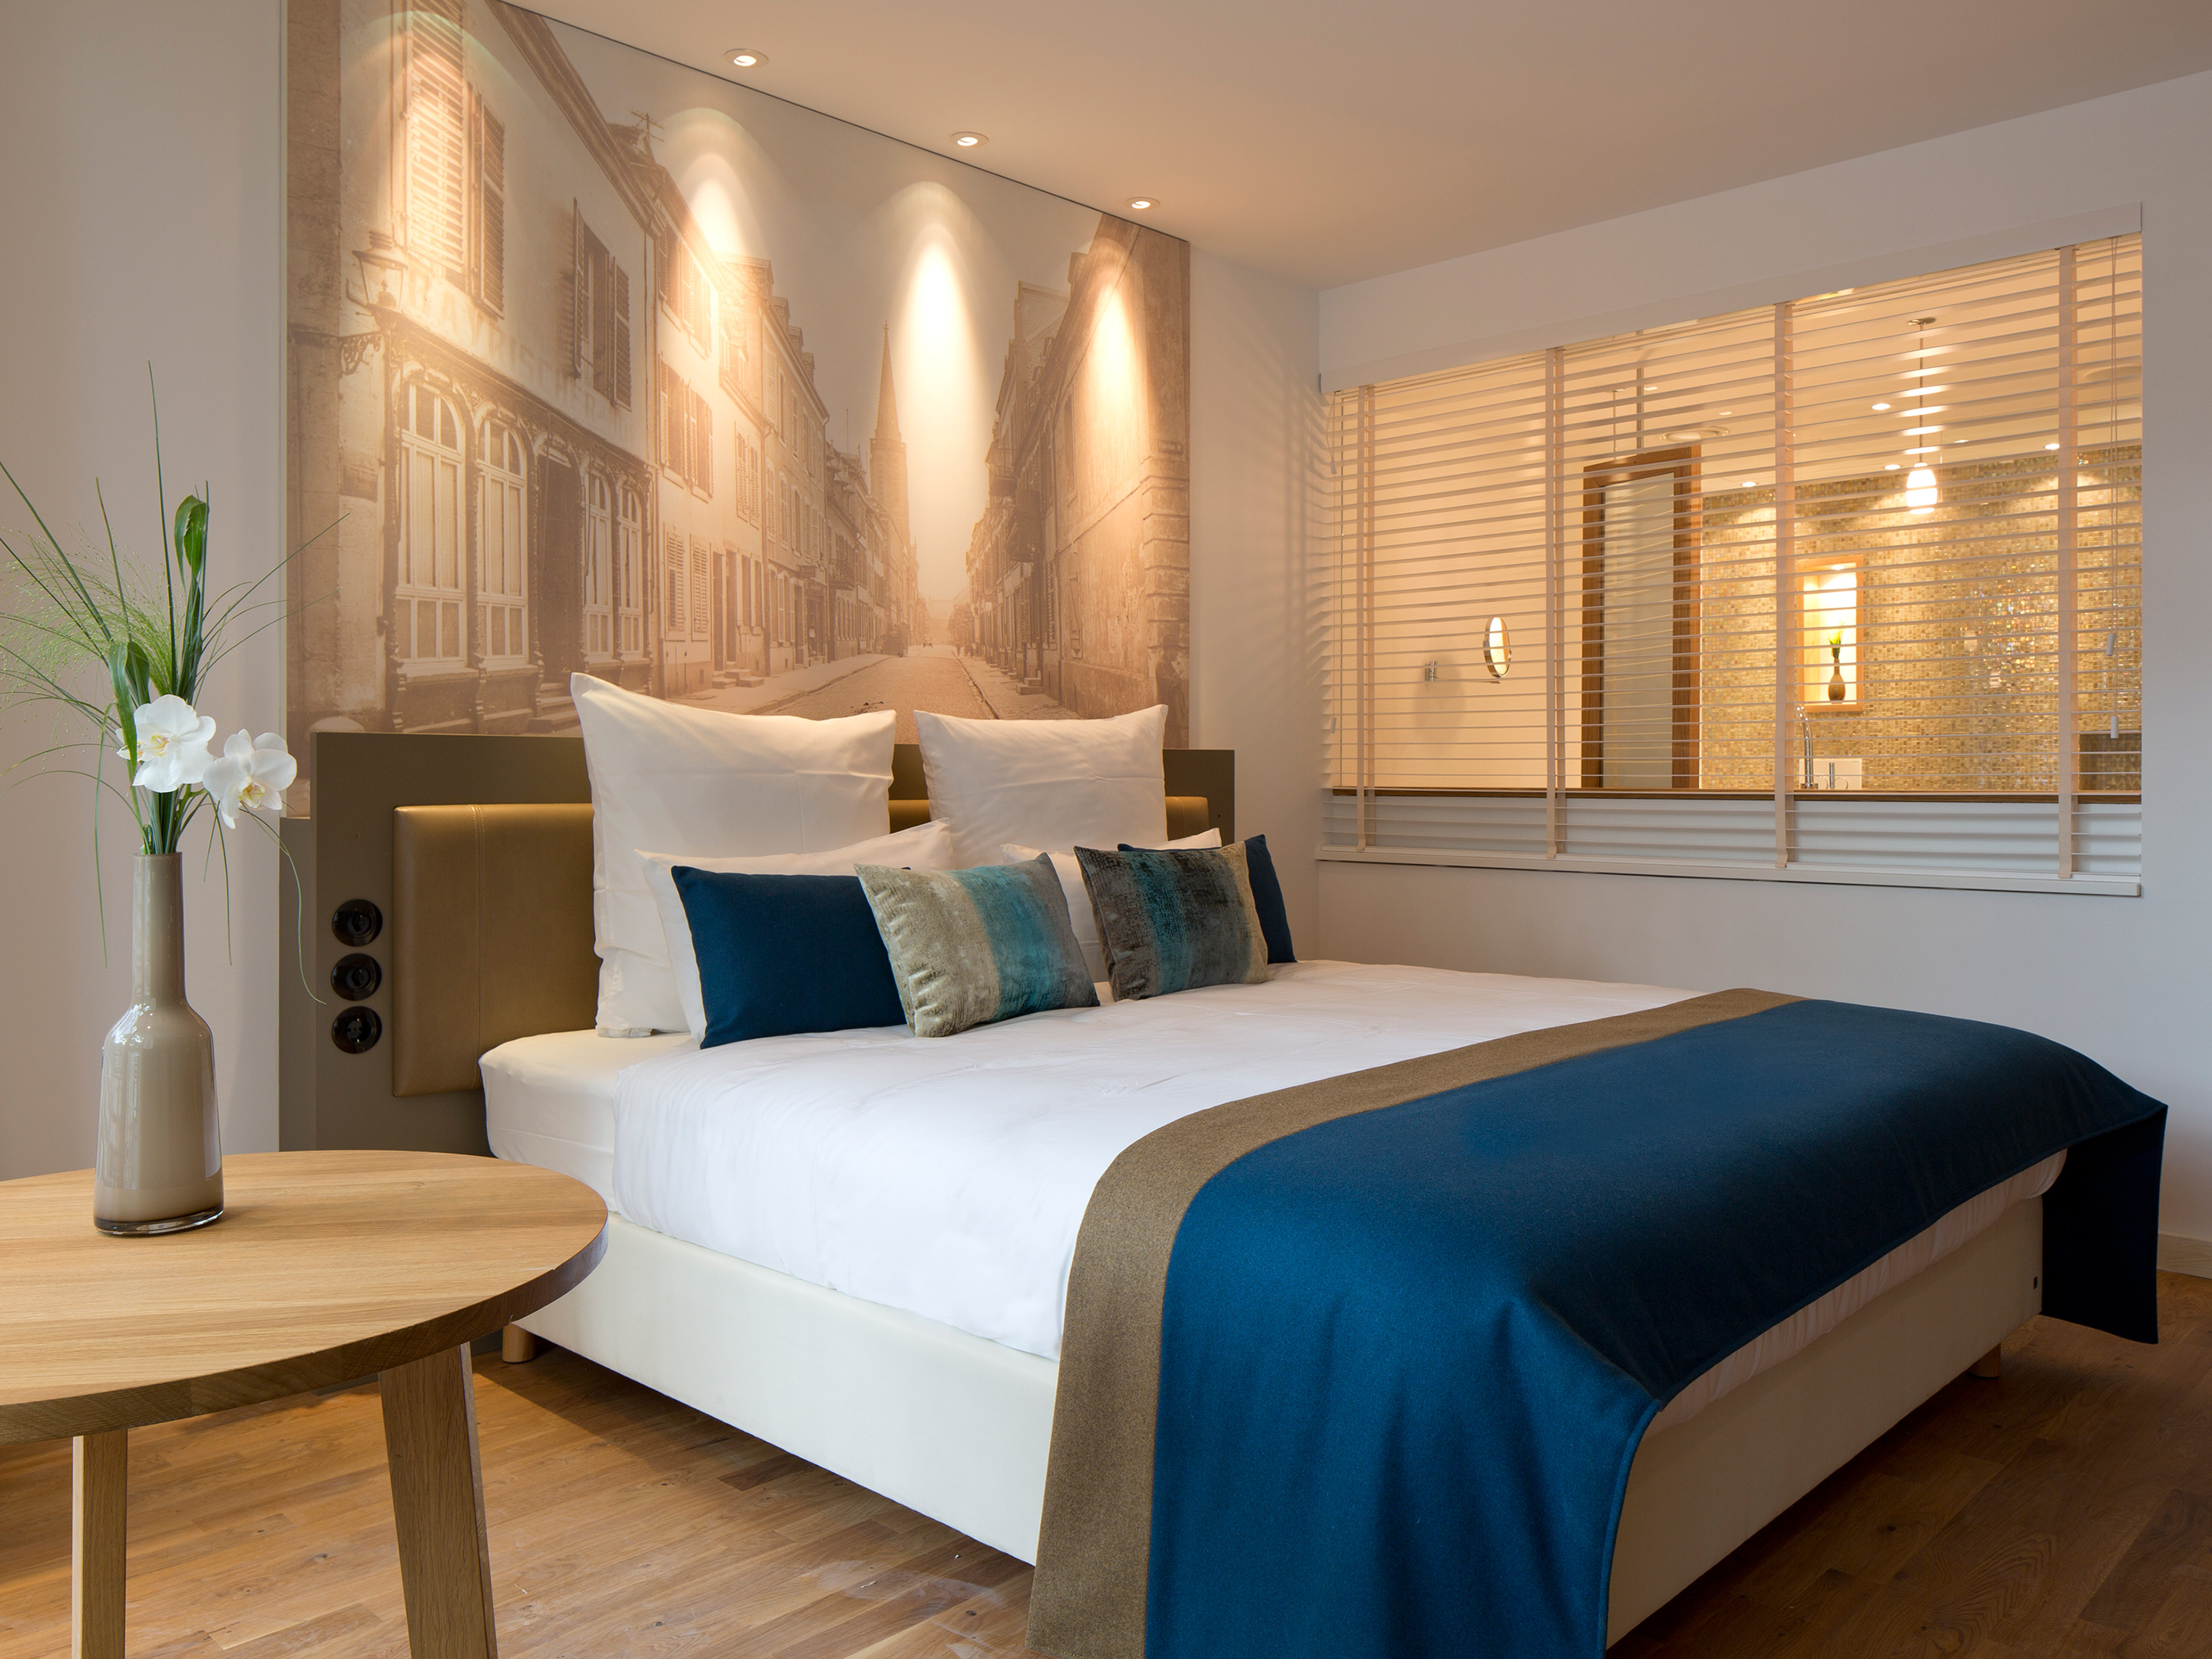 Rooms suites at la maison hotel in saarlouis design for Designhotels in deutschland